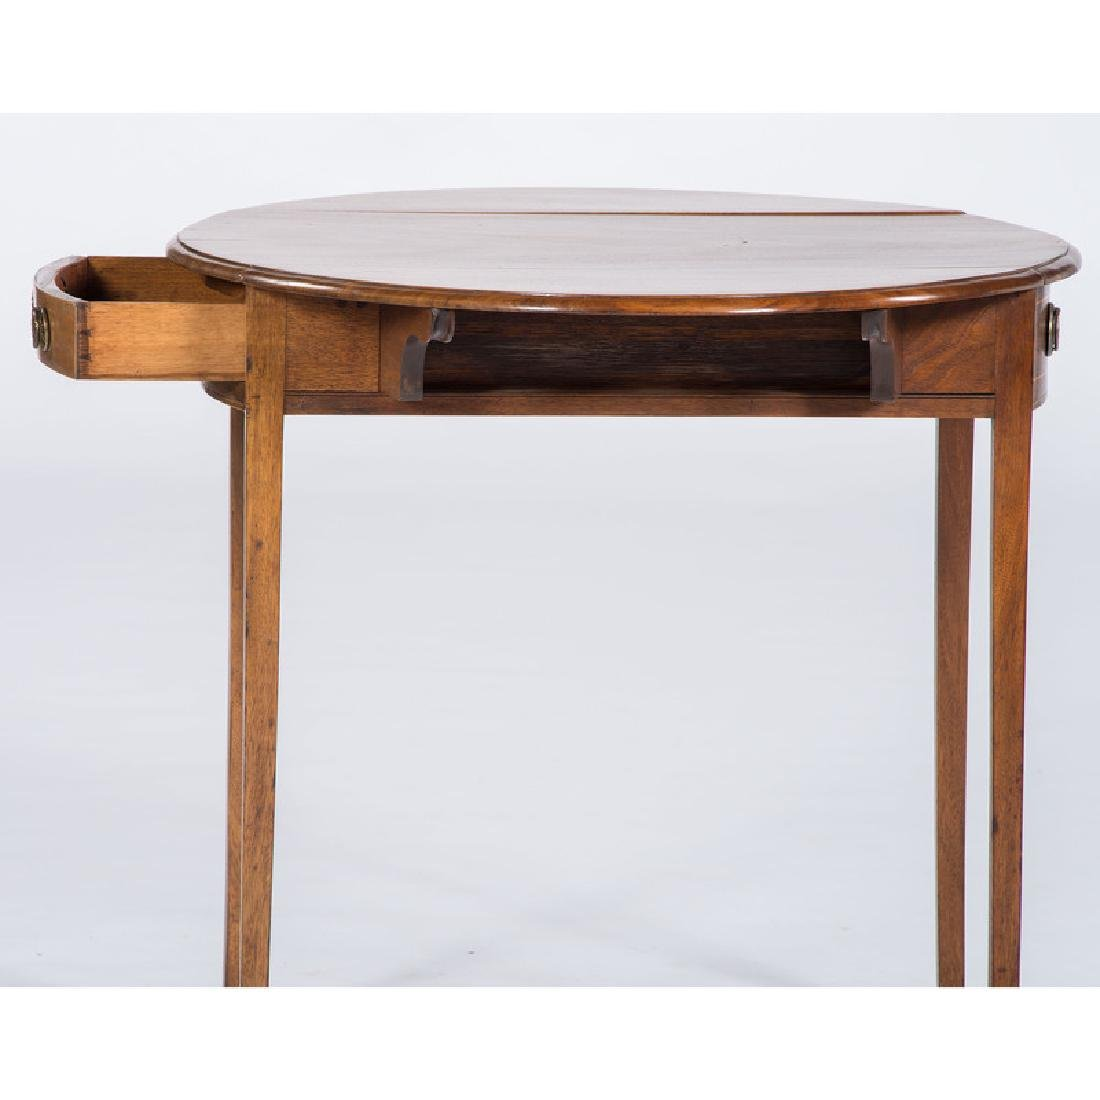 English Hepplewhite Pembroke Table - 3